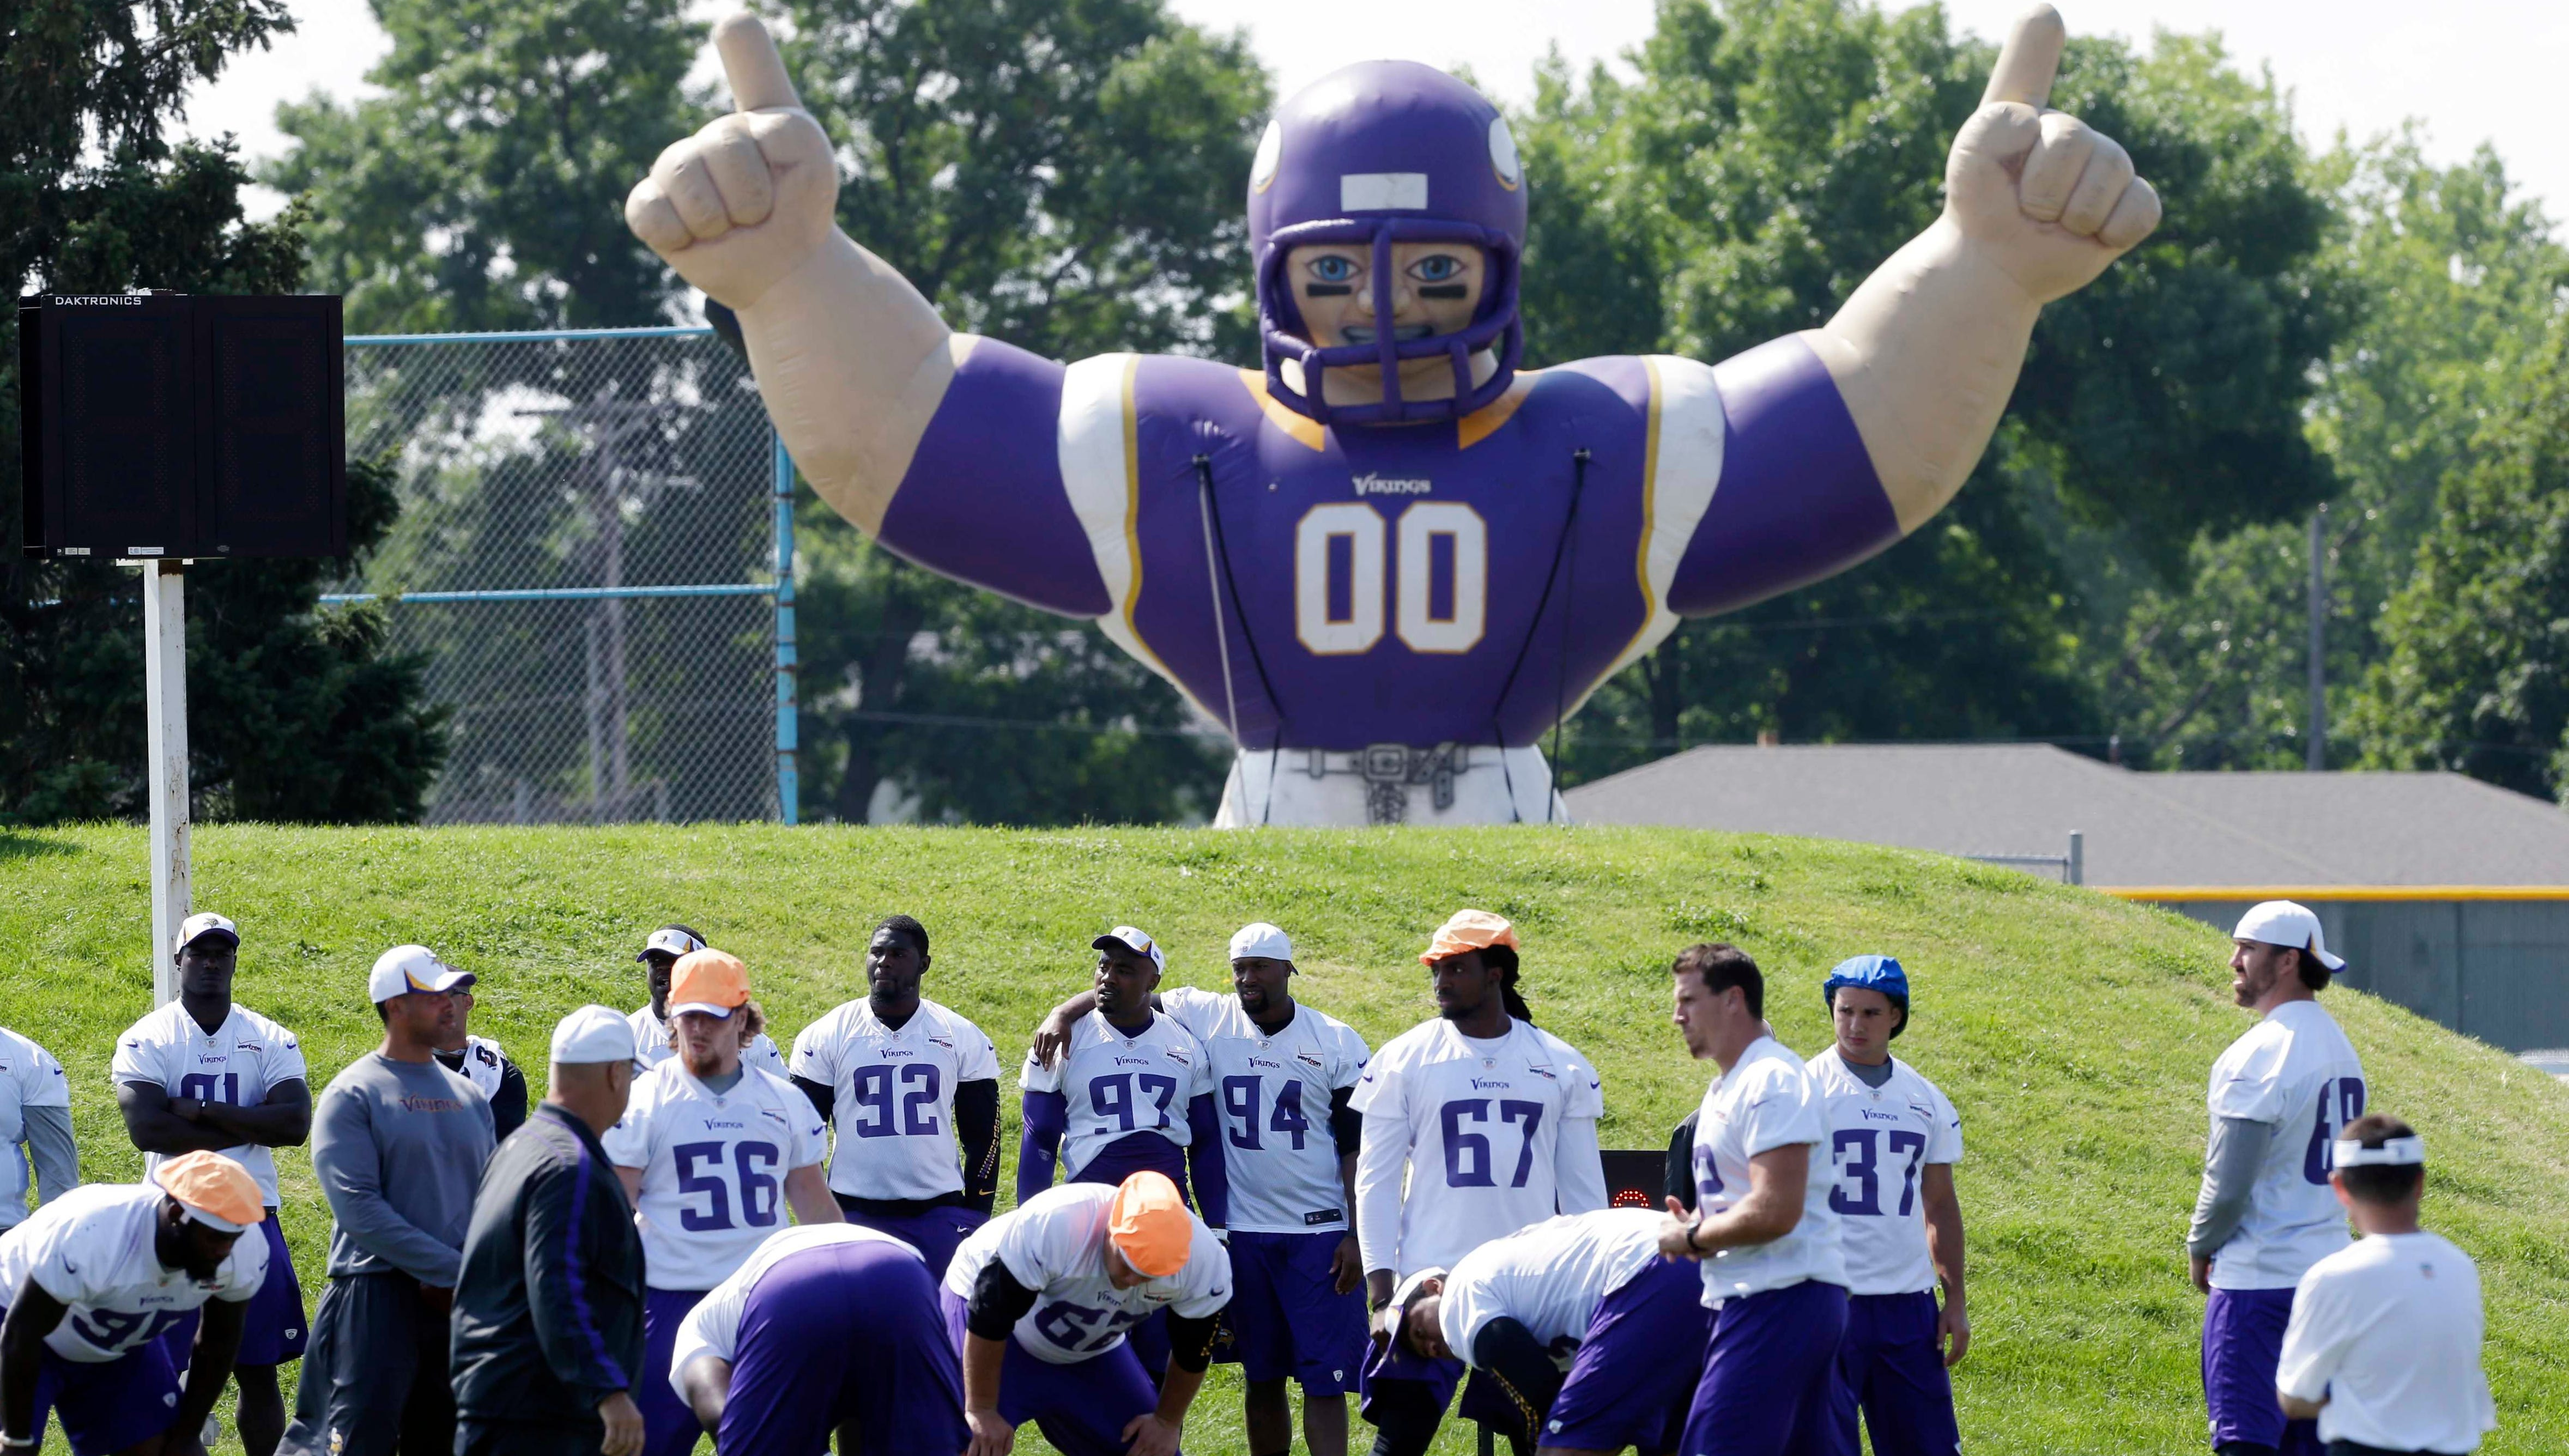 The Vikings practice beneath some watchful eyes in Mankato, Minn., on Aug. 7.